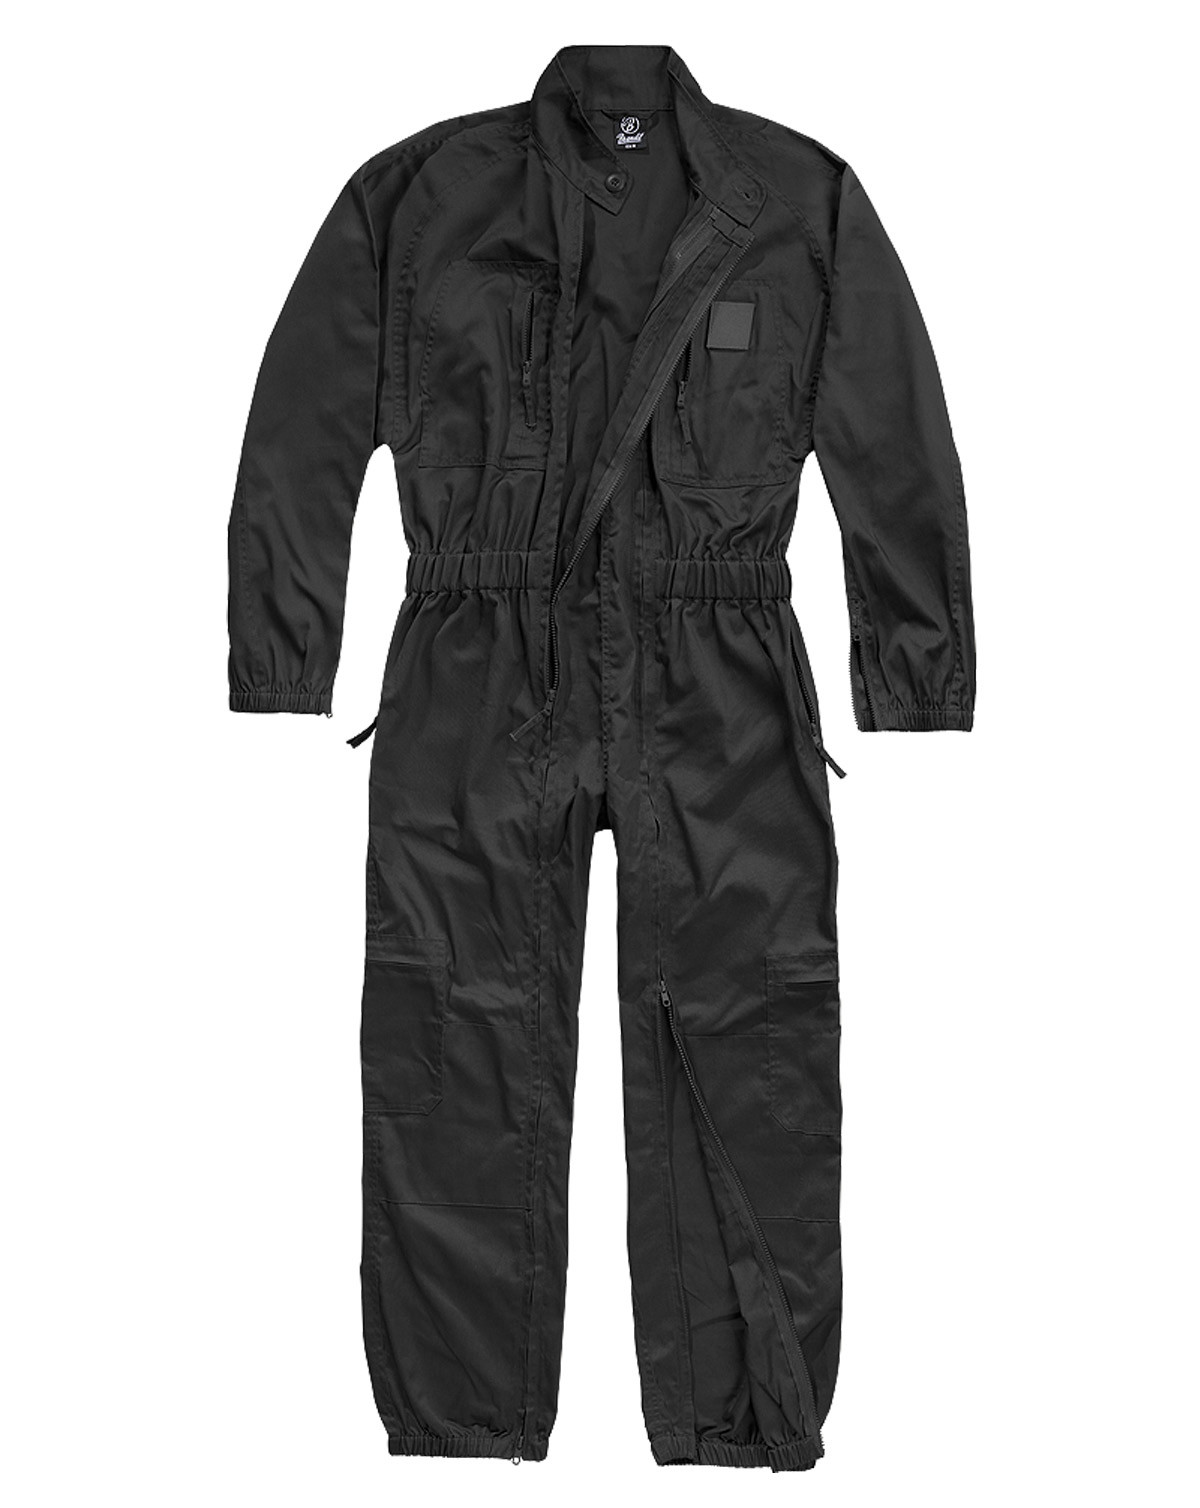 Image of   Brandit Heldragt - Flightsuit u. Foer (Sort, 2XL)